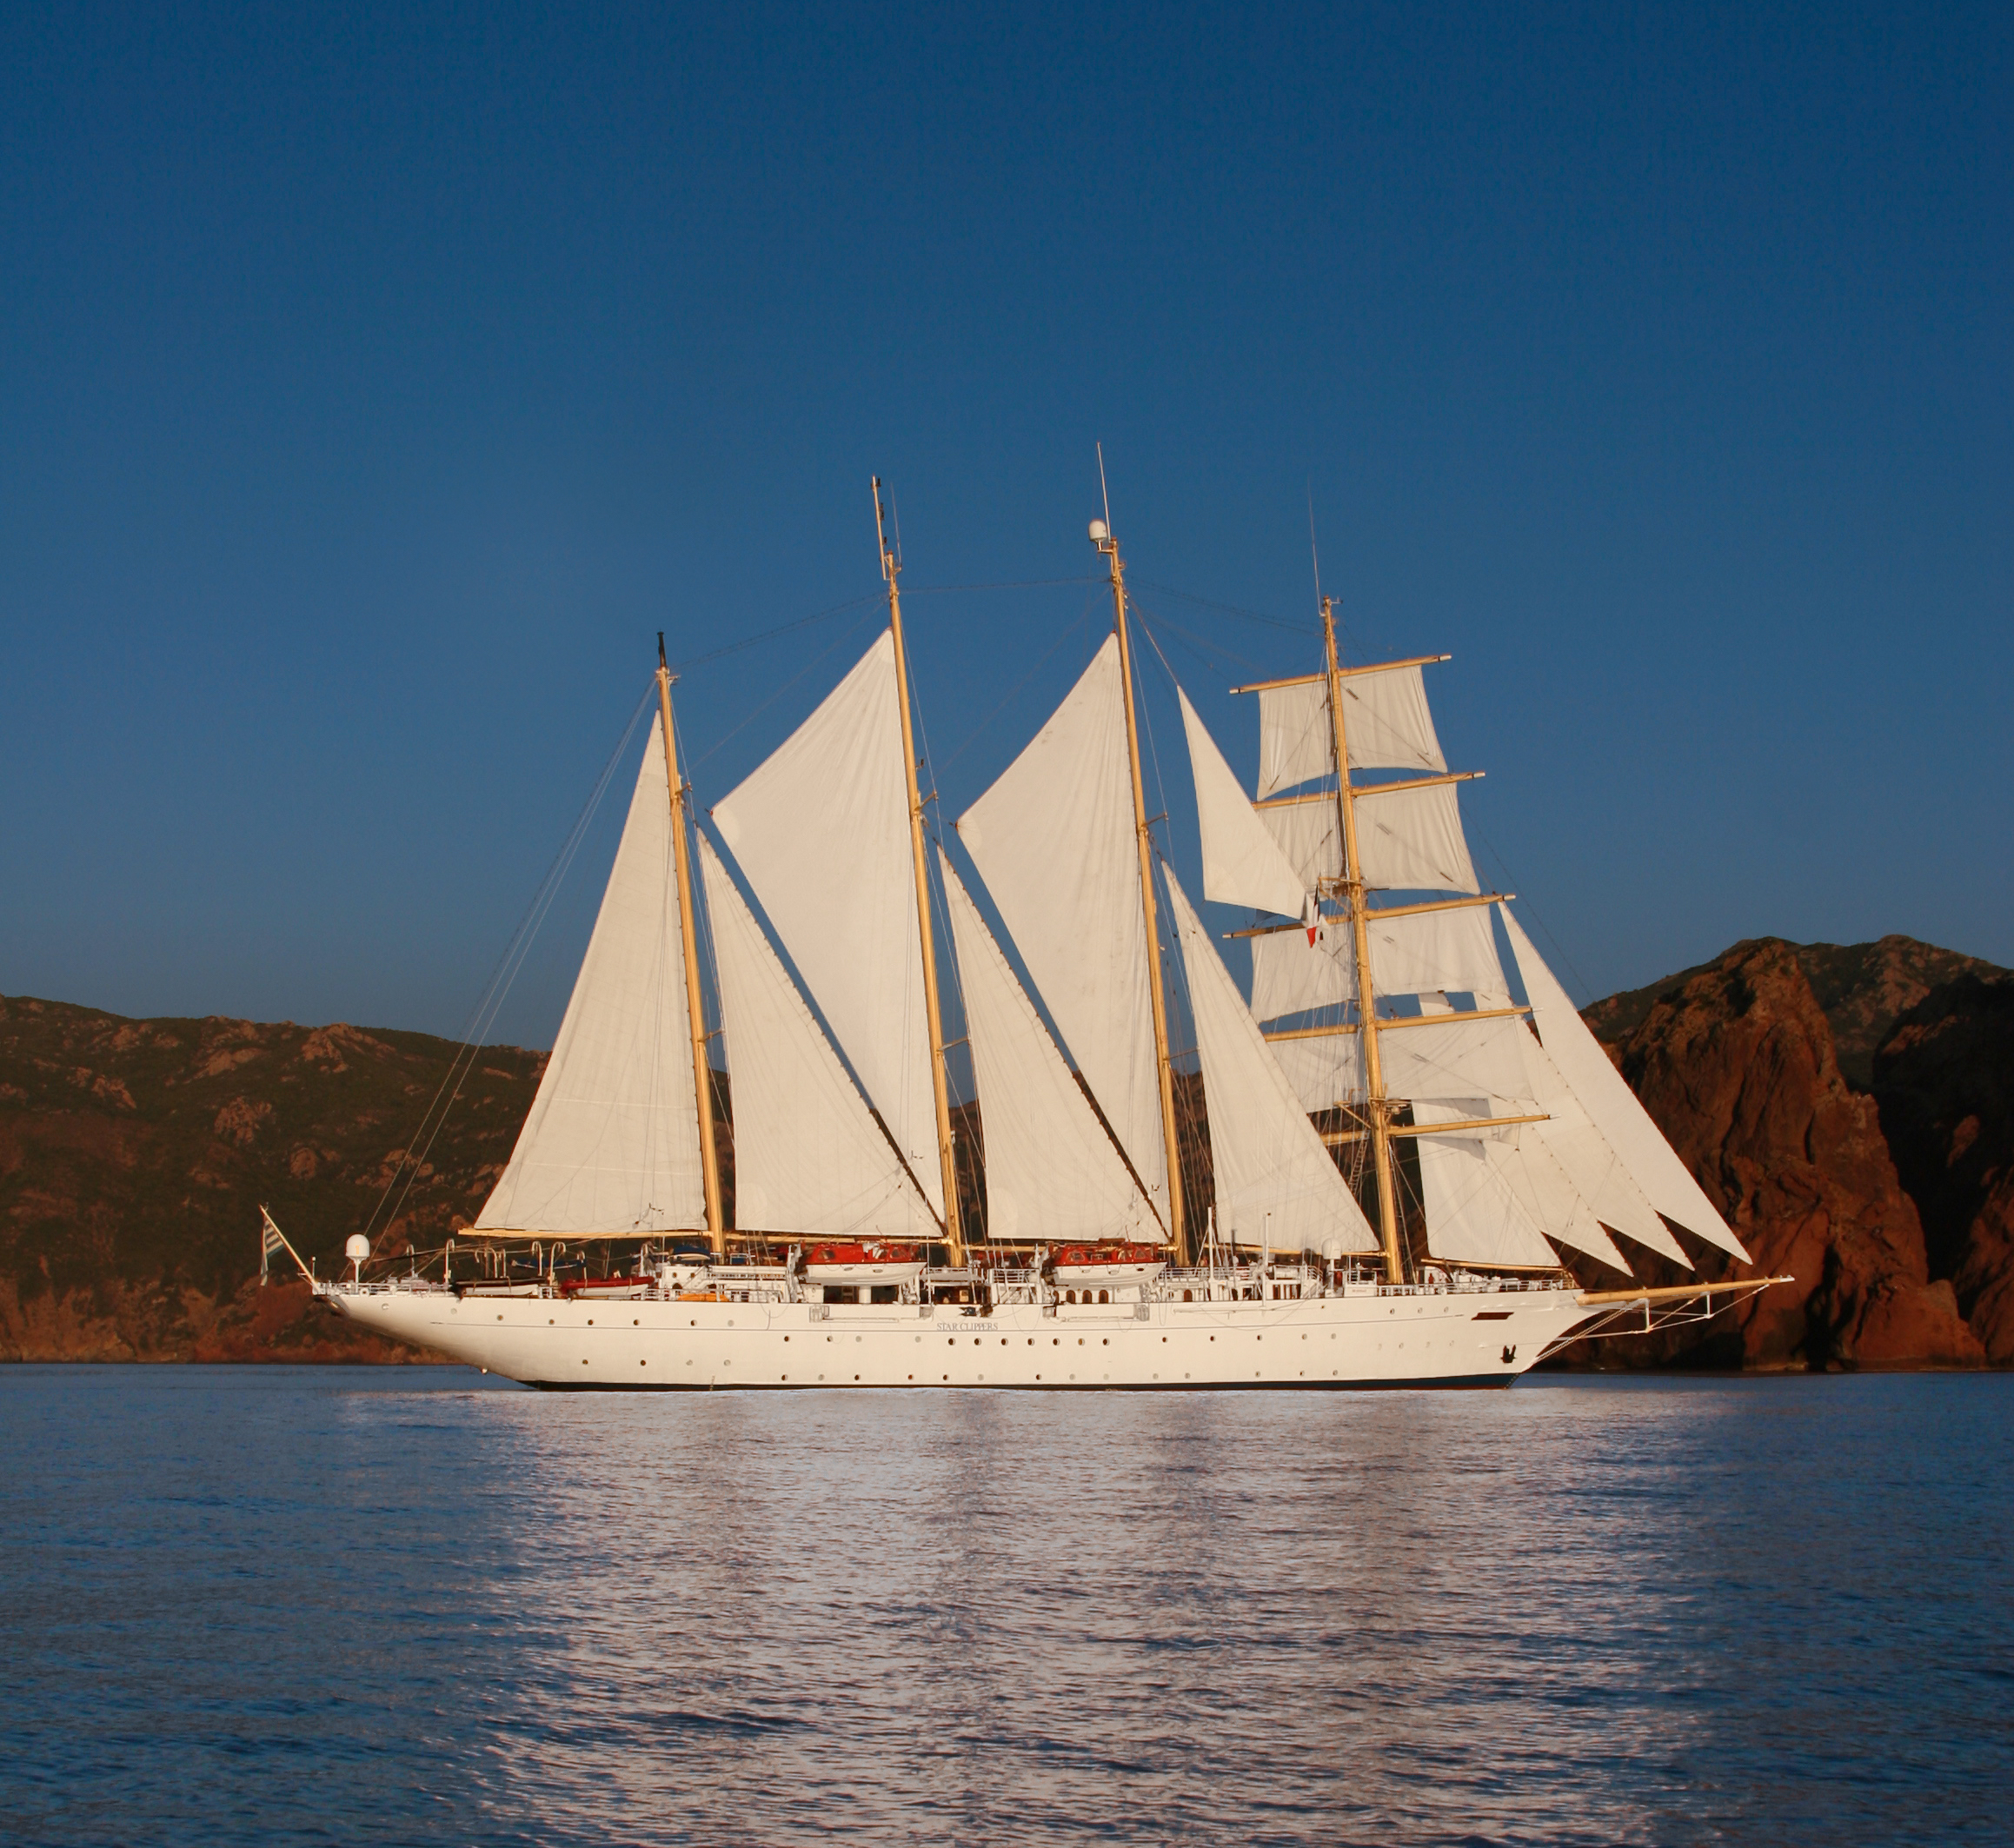 Star Clippers: An Adventure under Sail